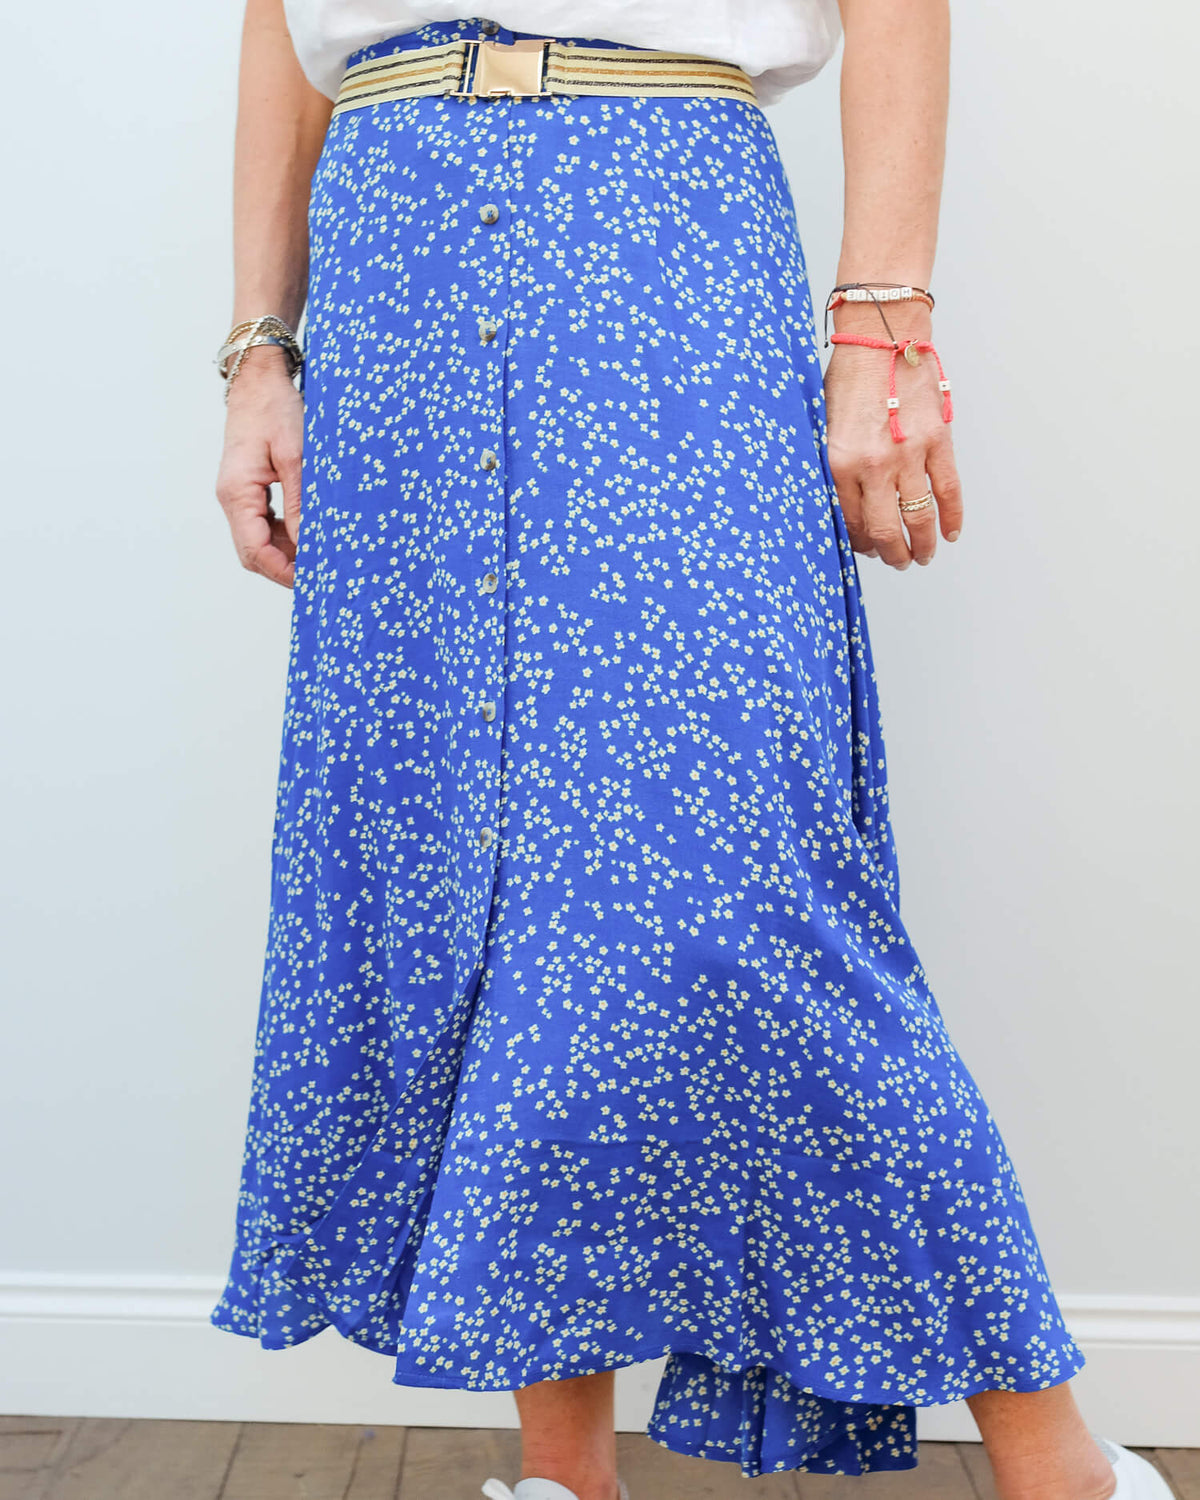 L&H Jacinthe skirt in daisy blue